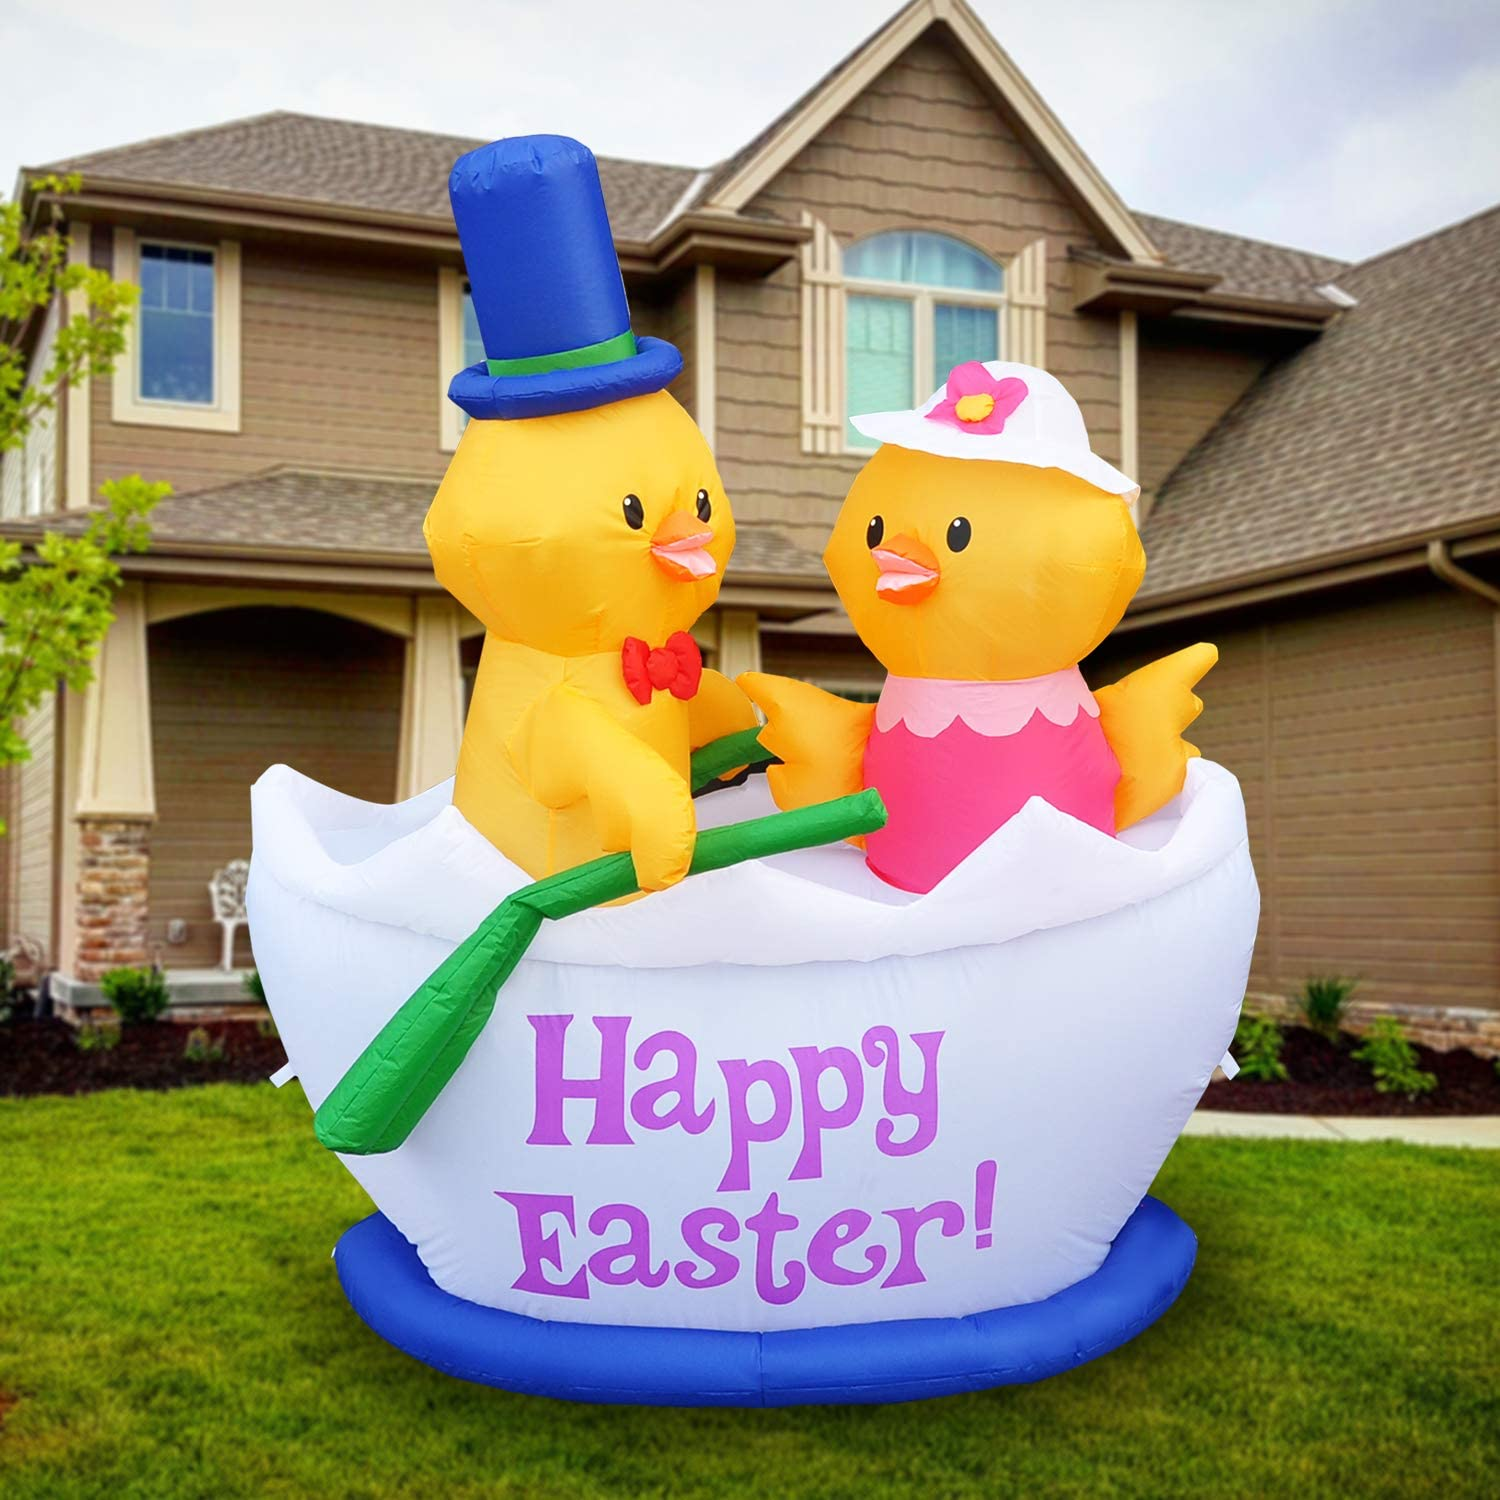 SEASONBLOW 5 FT LED Light Up Inflatable Chicks in Easter Egg Boat Blow Up for Yard Lawn Garden Home Outdoor Indoor Holiday Decor